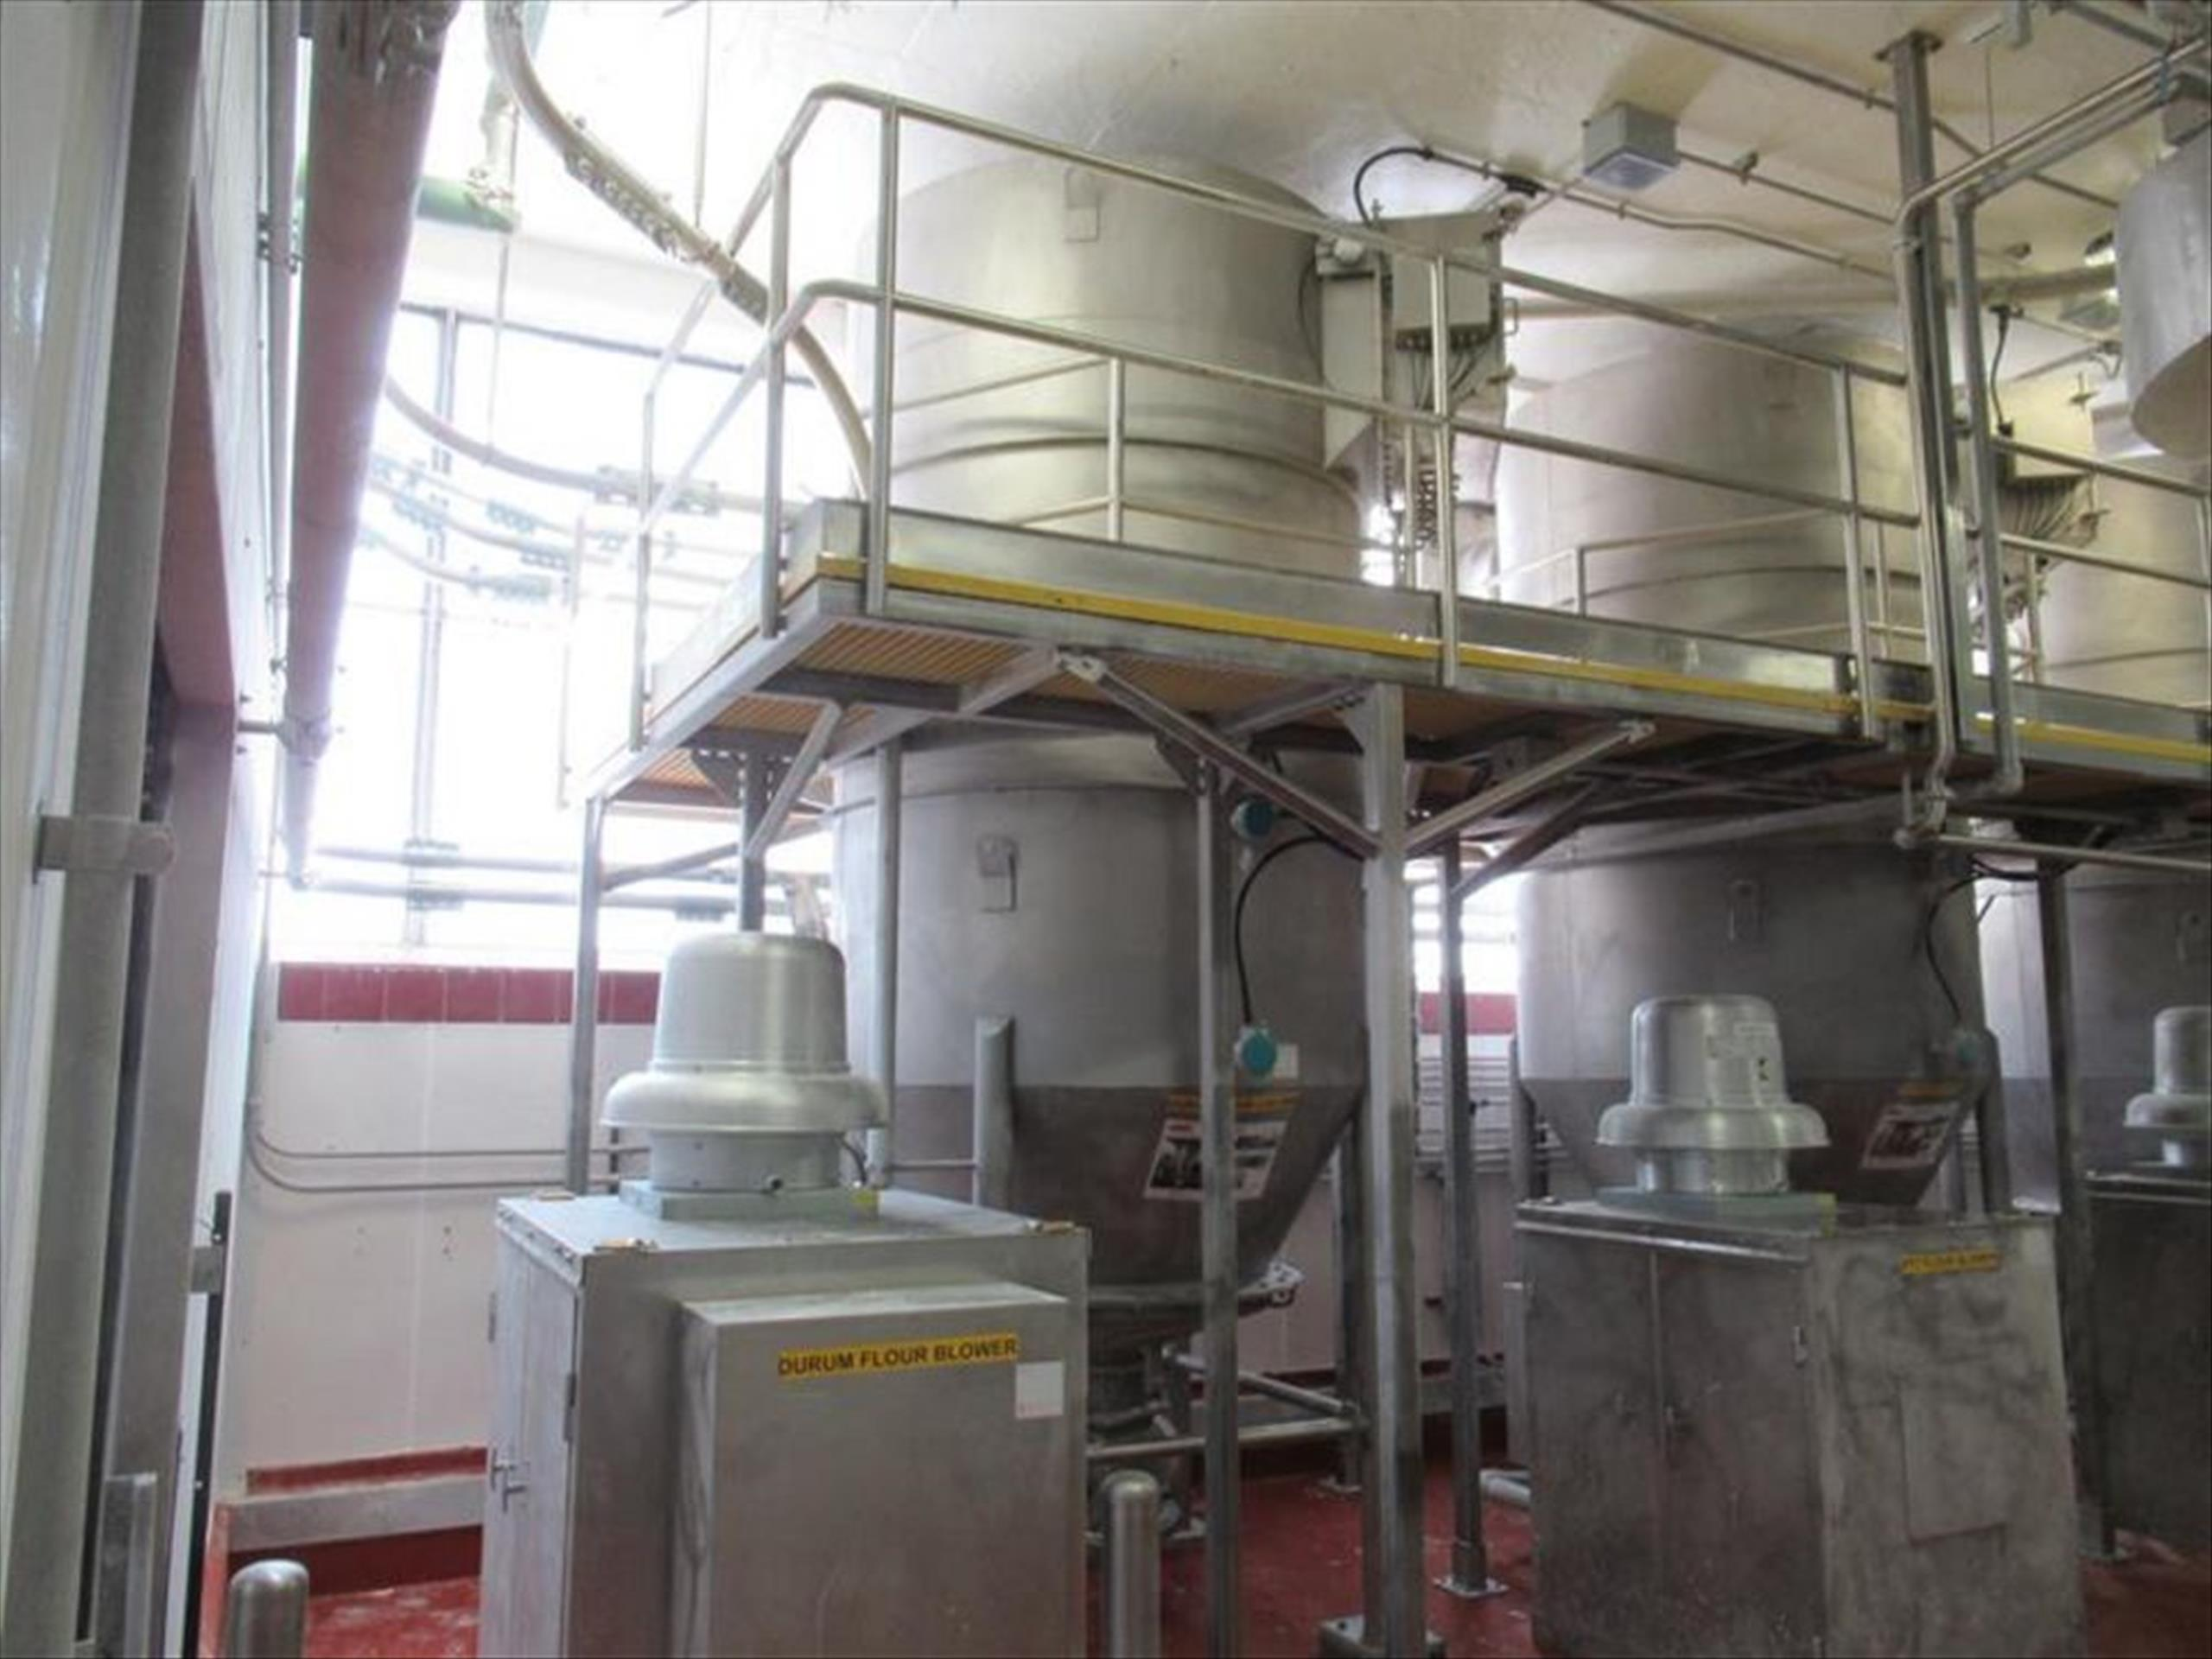 Schick durum flour receiver approx 6 ft dia x 10 ft h straight x 30 in cone bottom, cone top, with